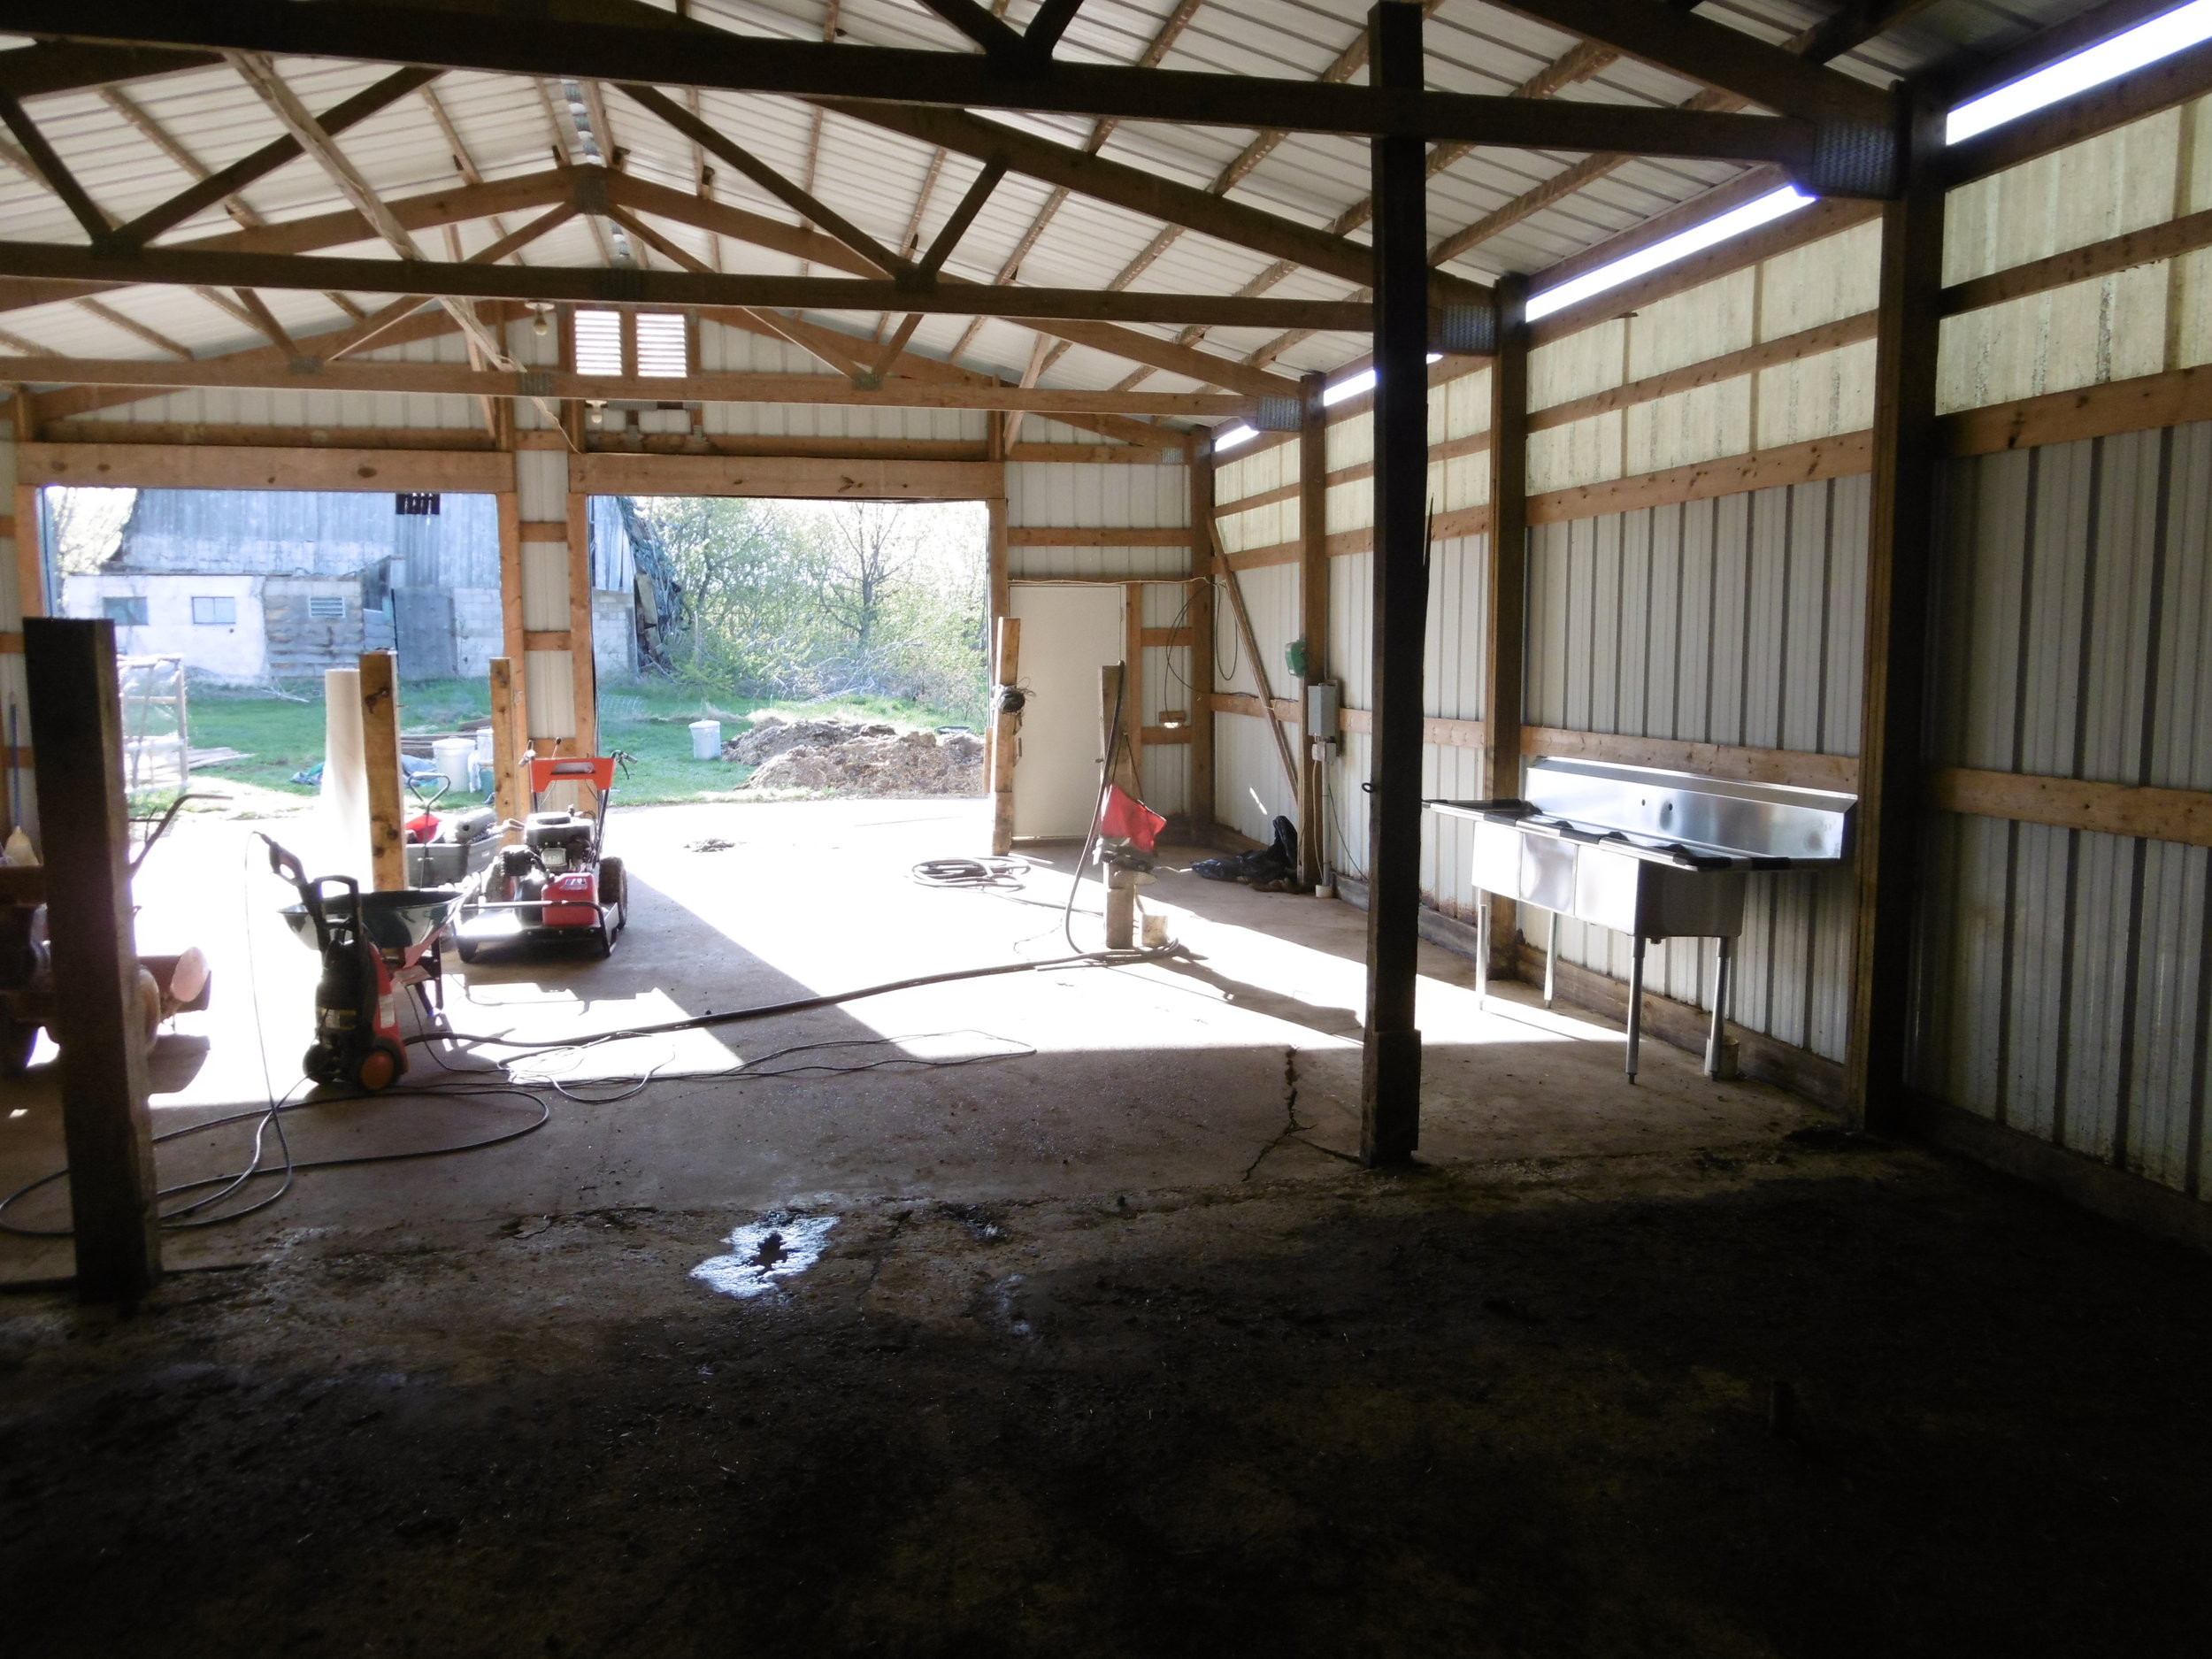 Clean barn on May 6